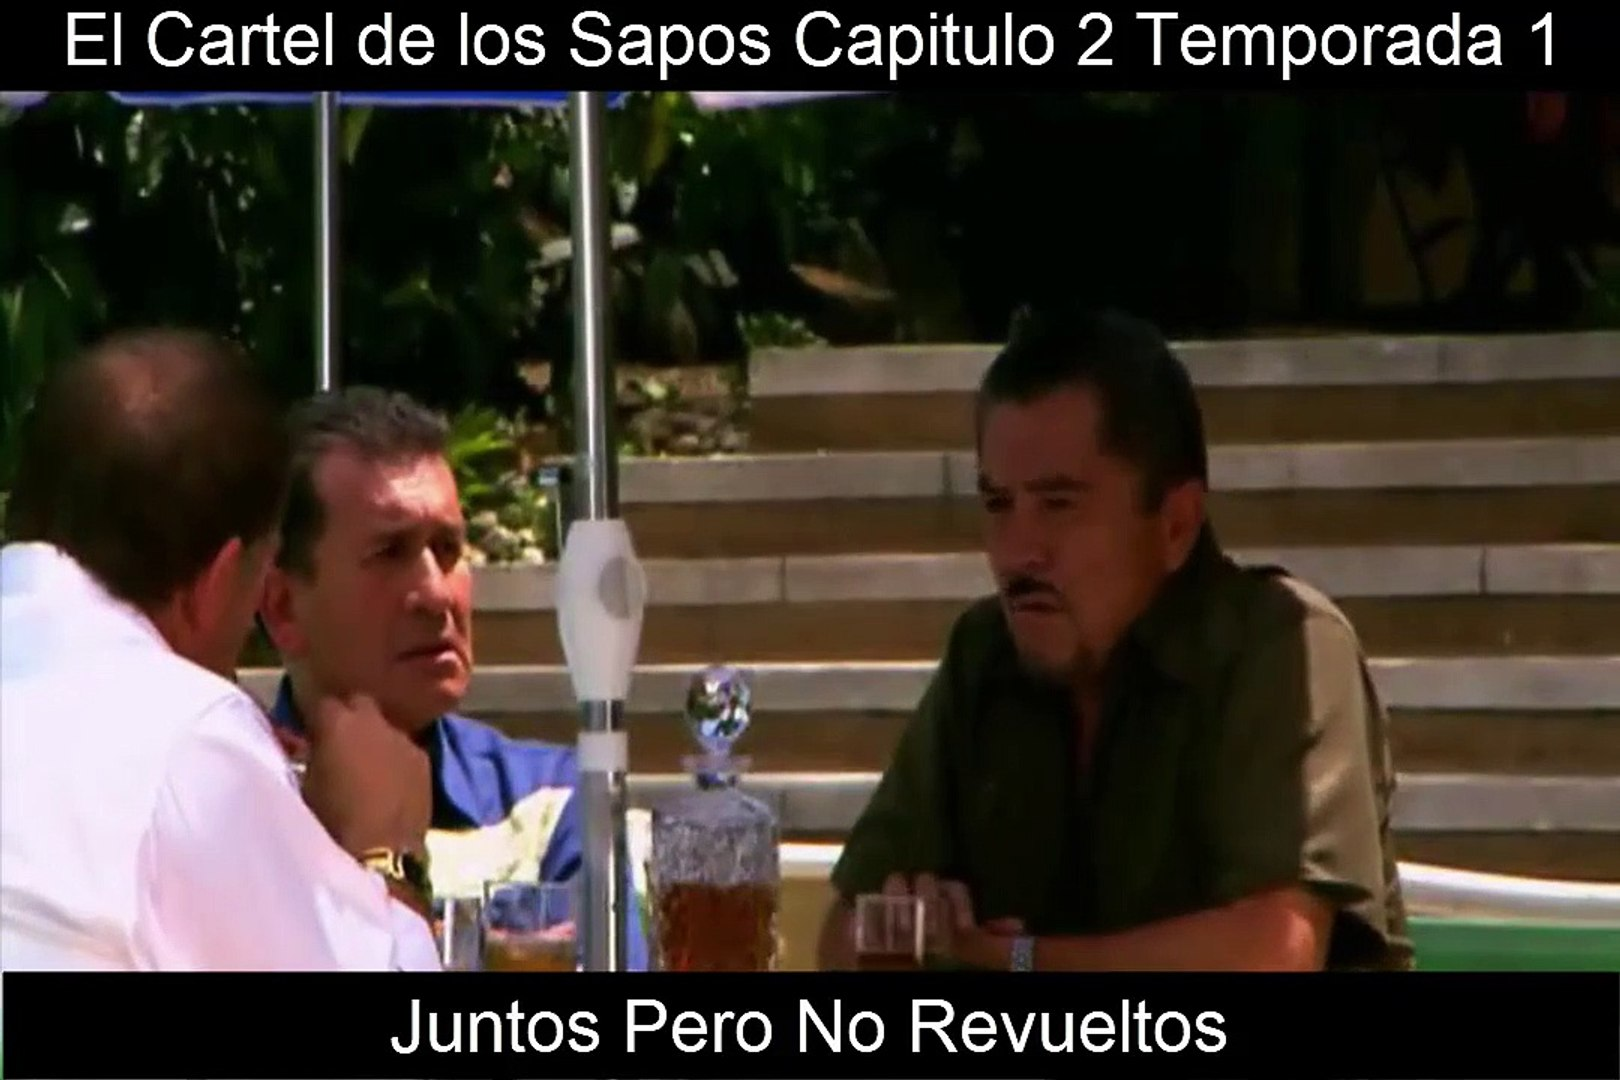 El Cartel De Los Sapos Capitulo 02 Temporada 1 Vídeo Dailymotion